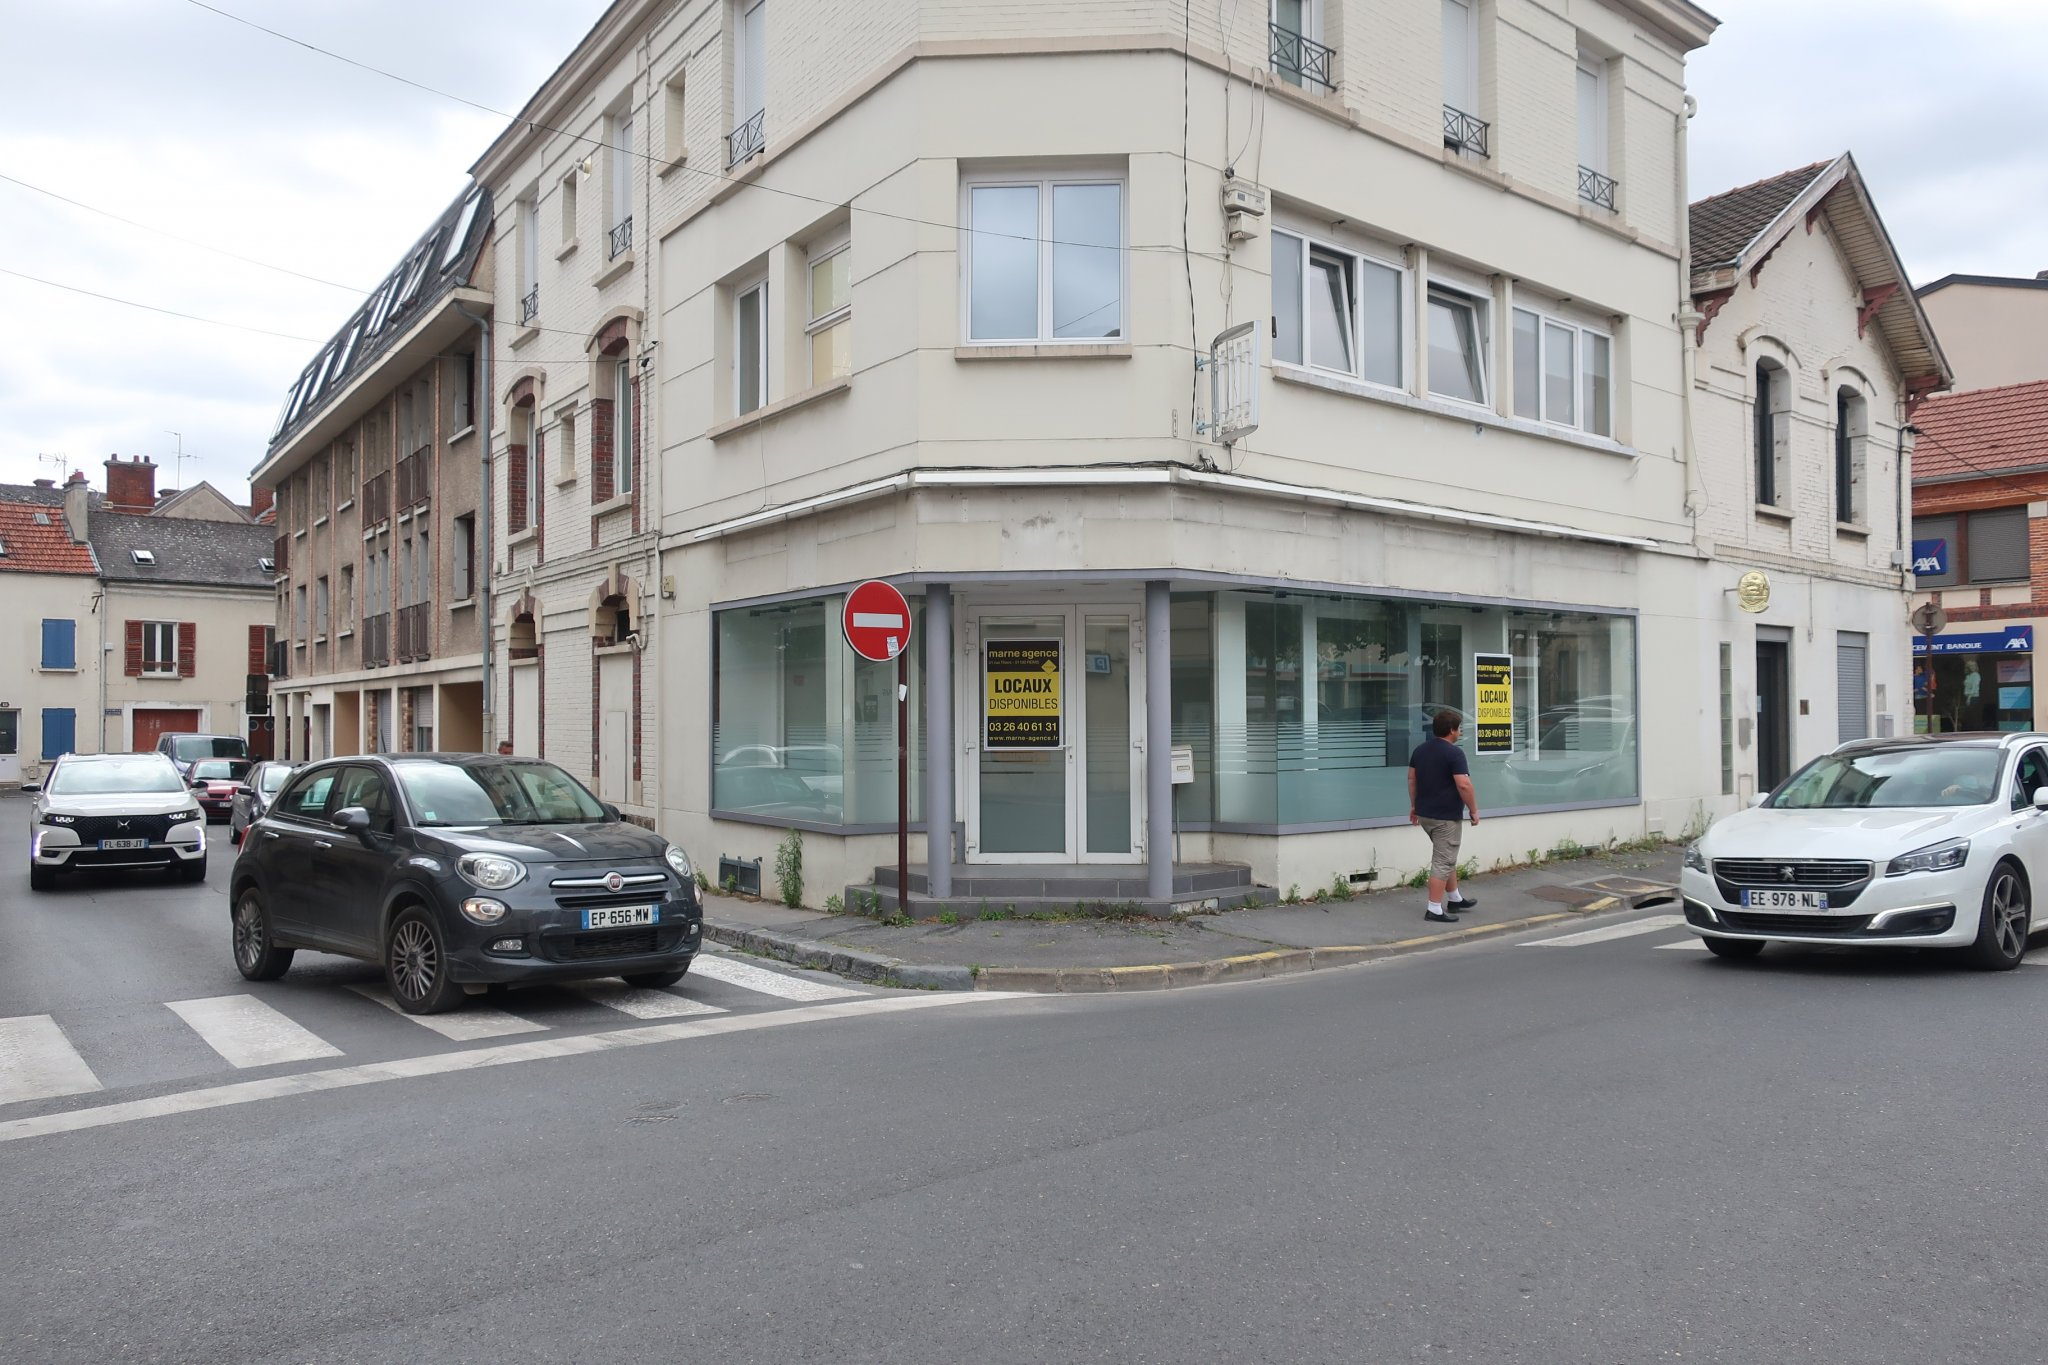 Local Commercial 75m2 EPERNAY